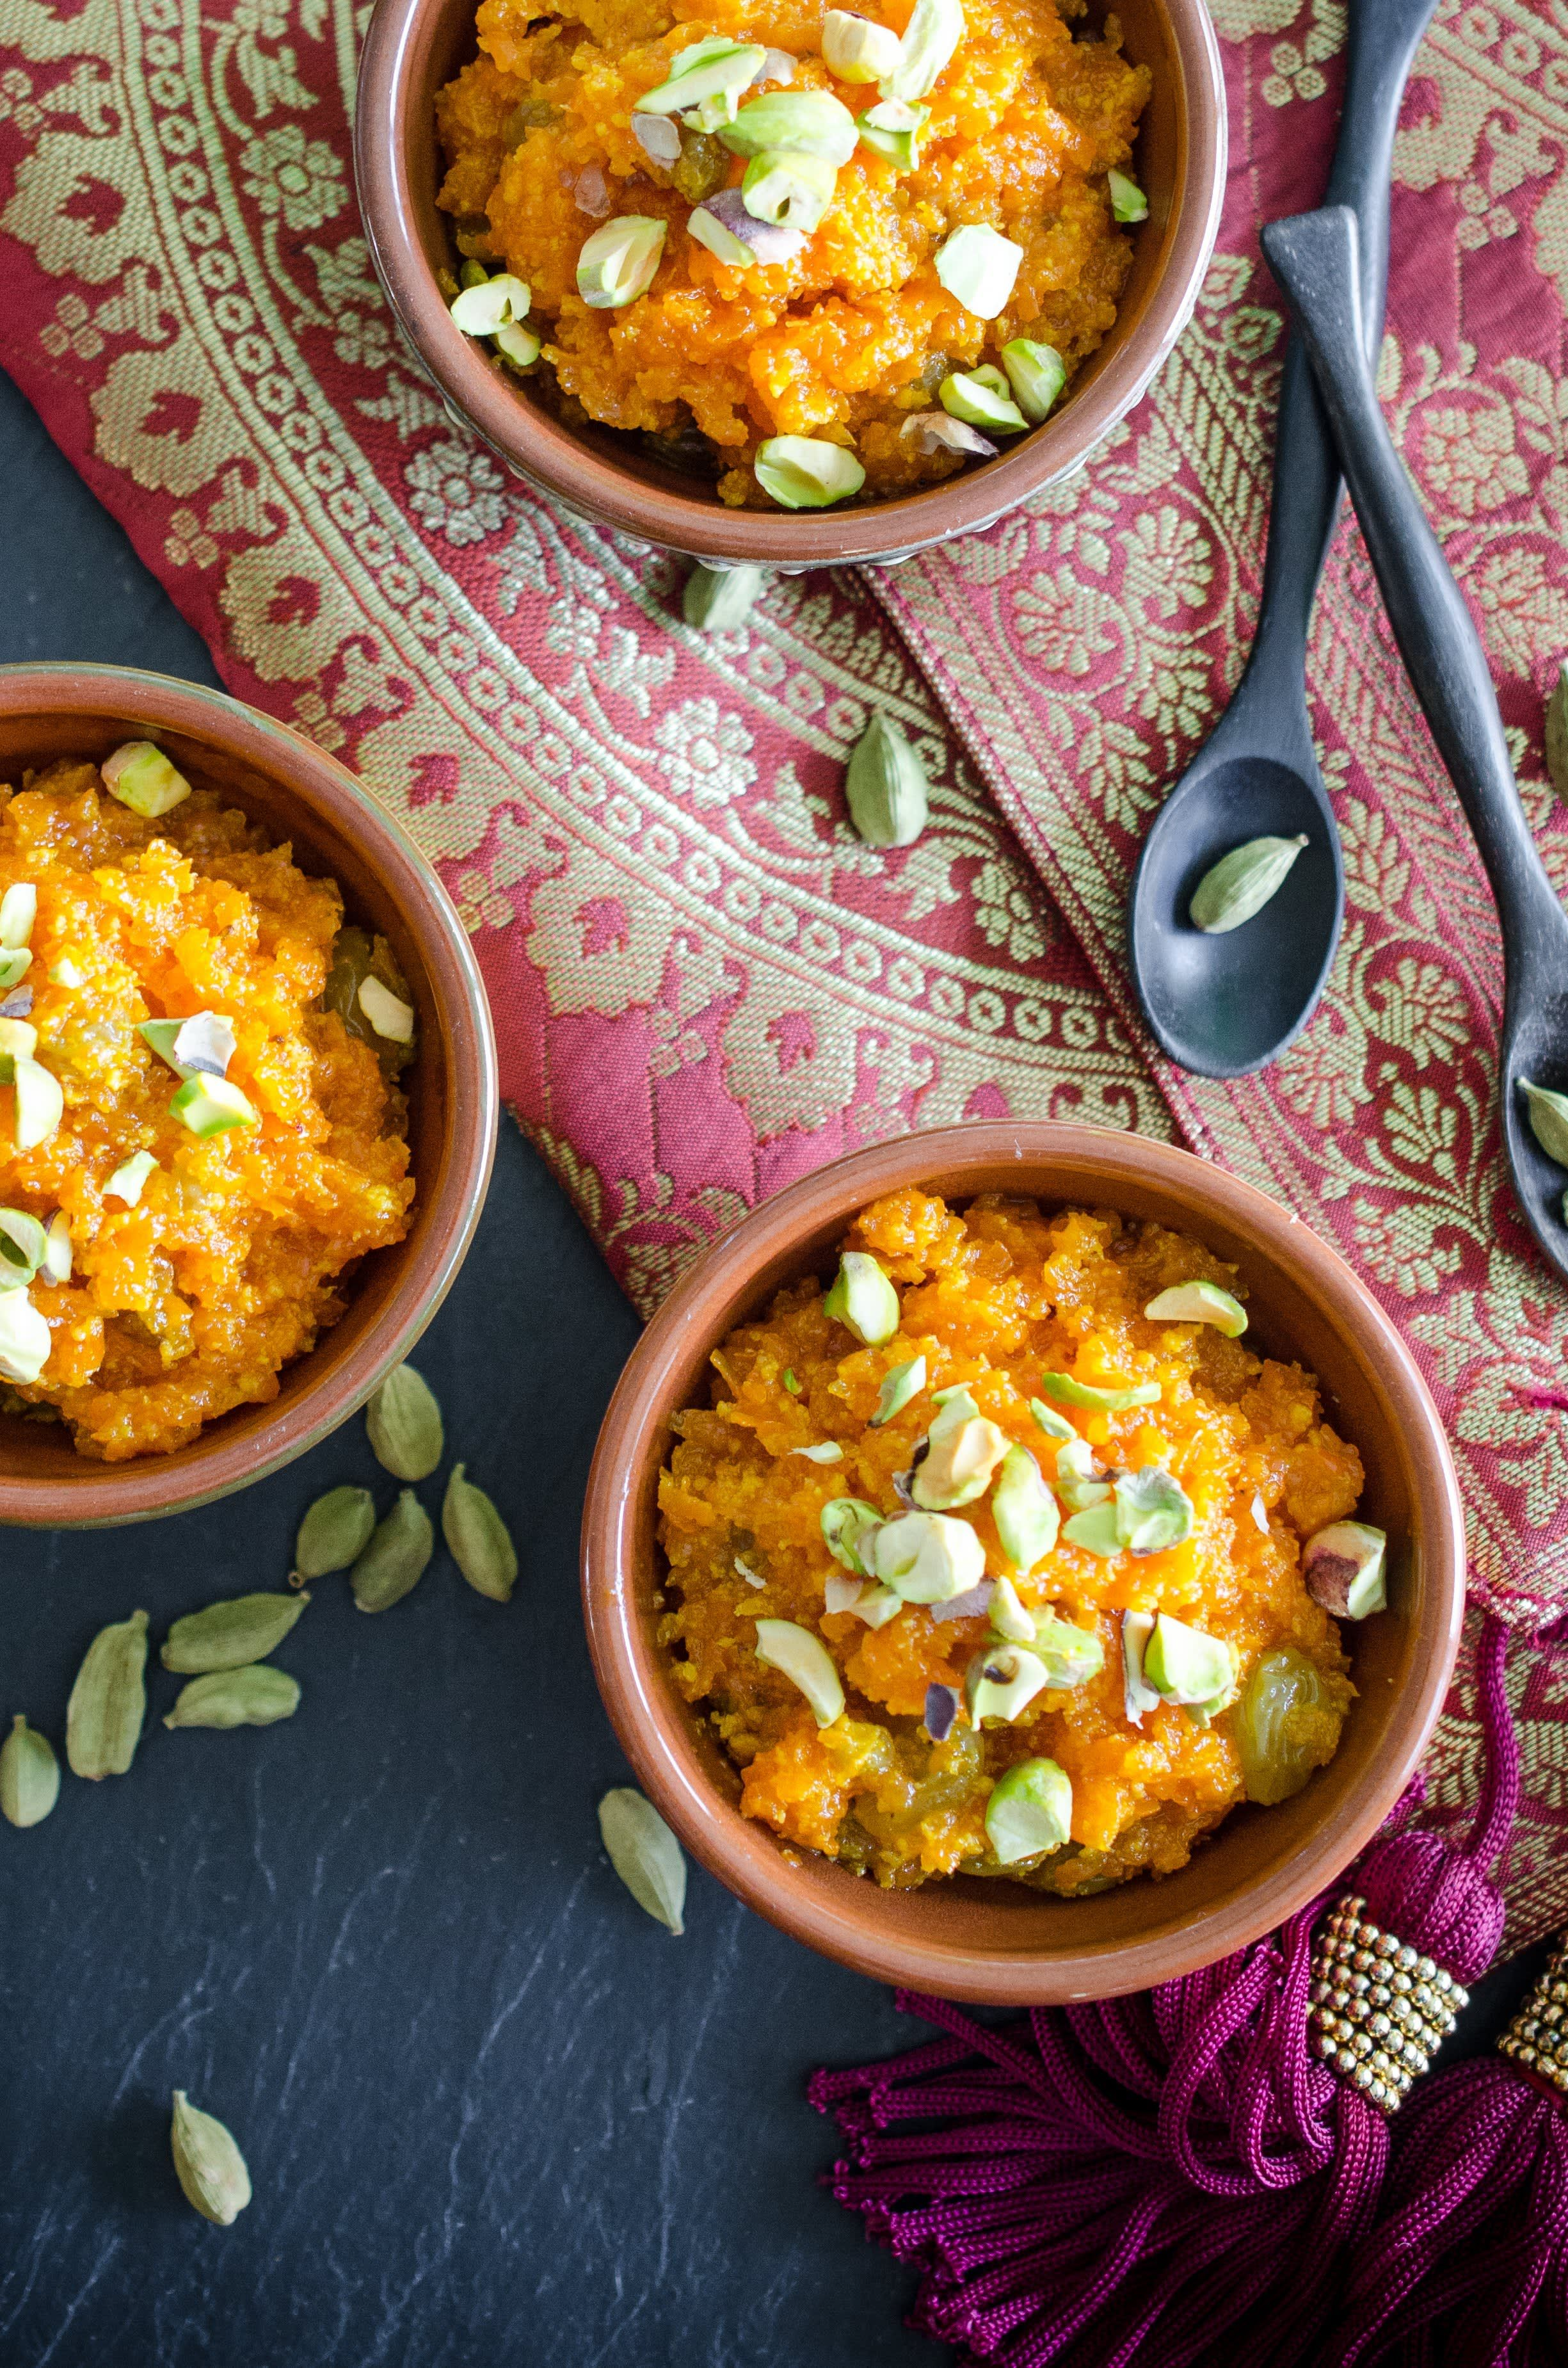 Carrot Halwa Recipe With Images Indian Food Recipes Carrot